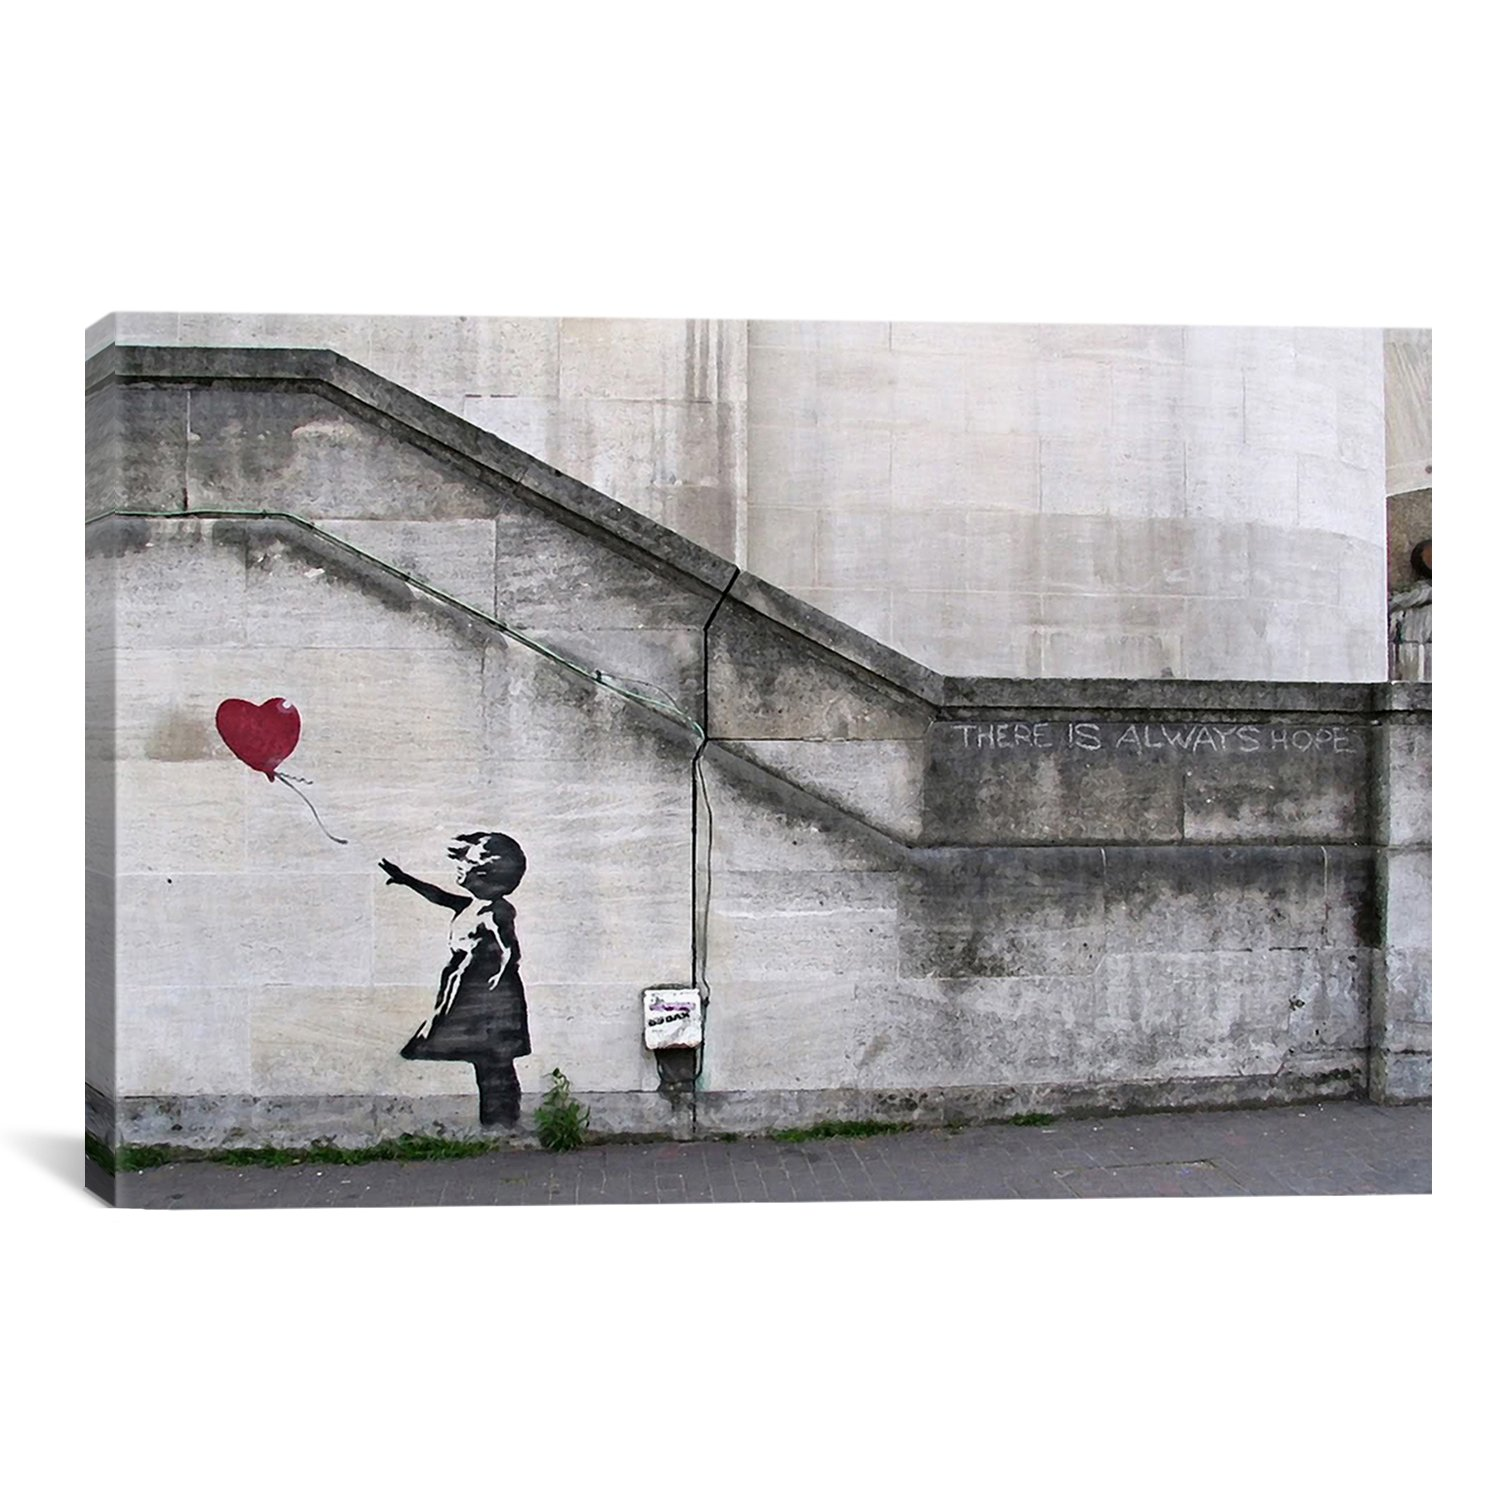 iCanvasART There is Always Hope Balloon Girl by Banksy Canvas Art Print, 61 by 41-Inch